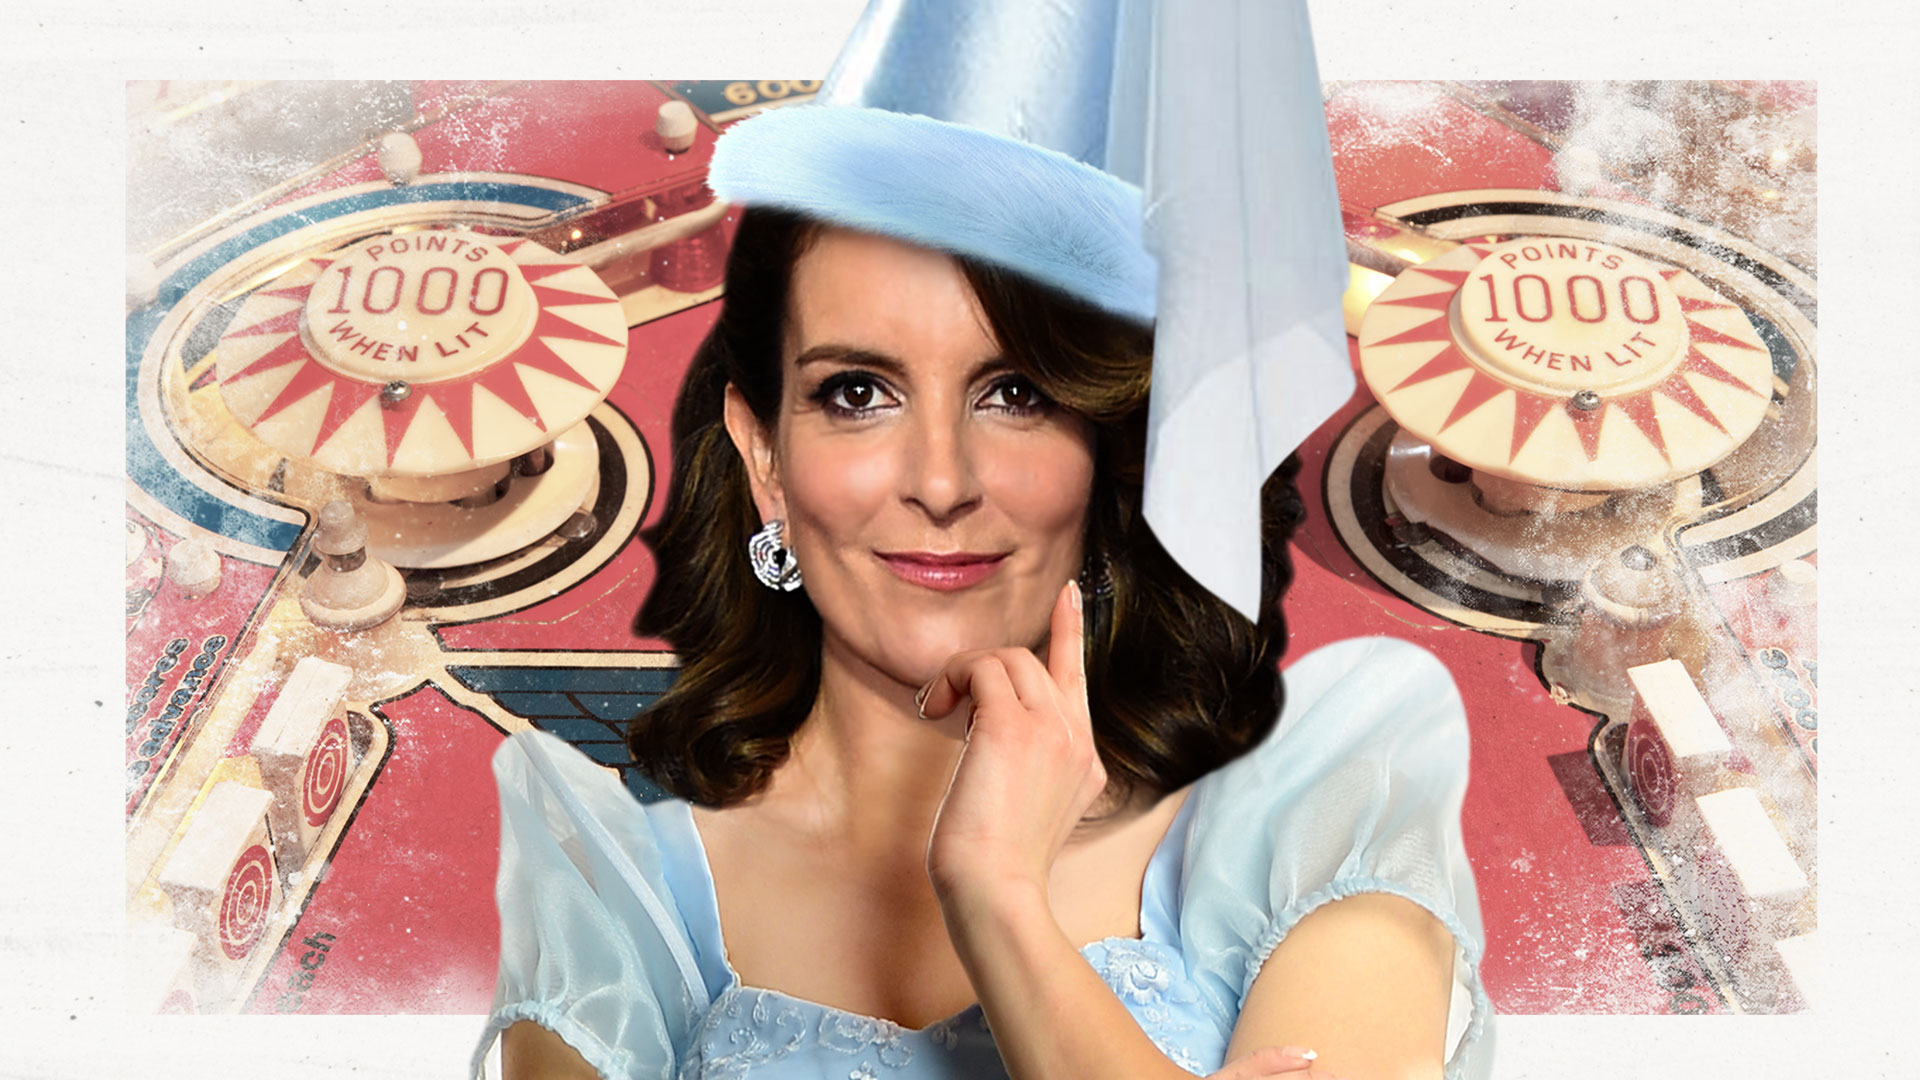 Biography Presents: Tina Fey